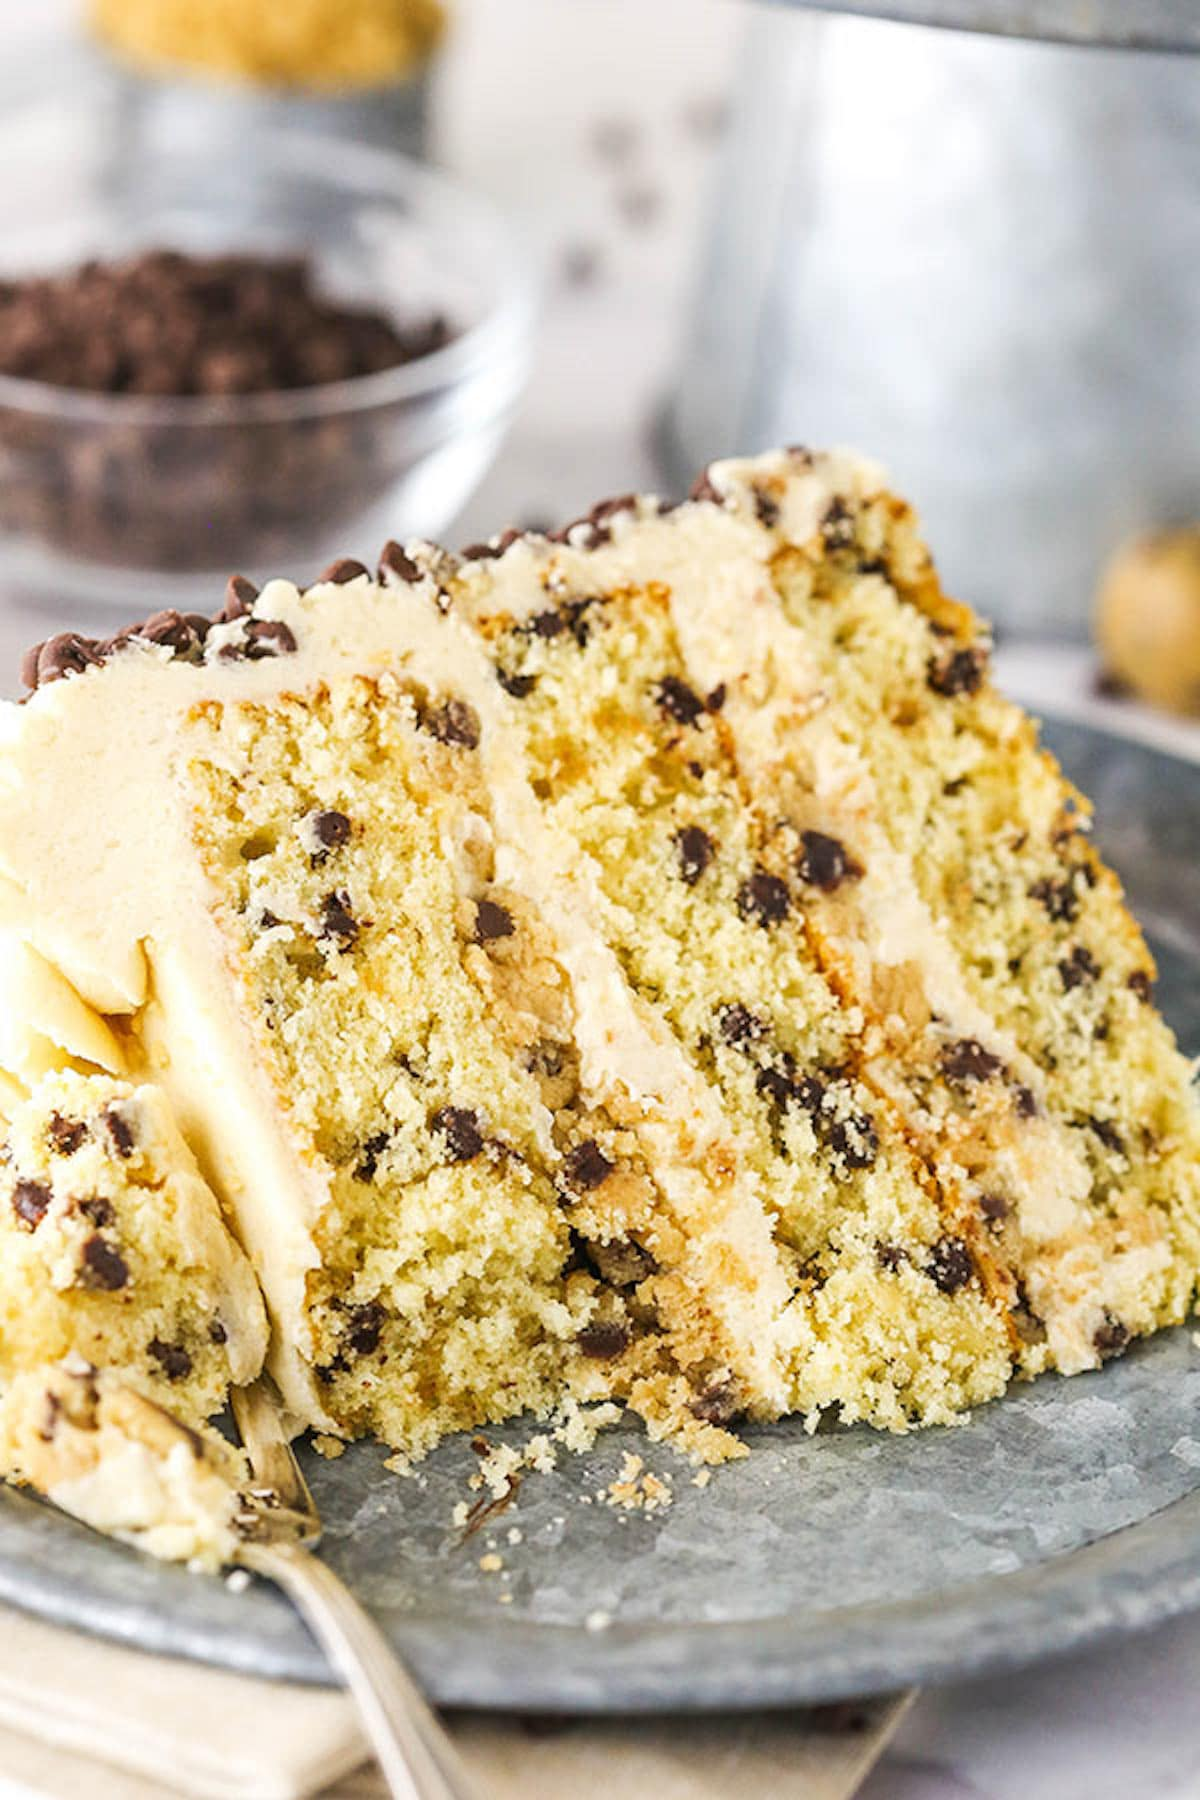 A Slice of Chocolate Chip Cookie Dough Layer Cake on a Metal Plate